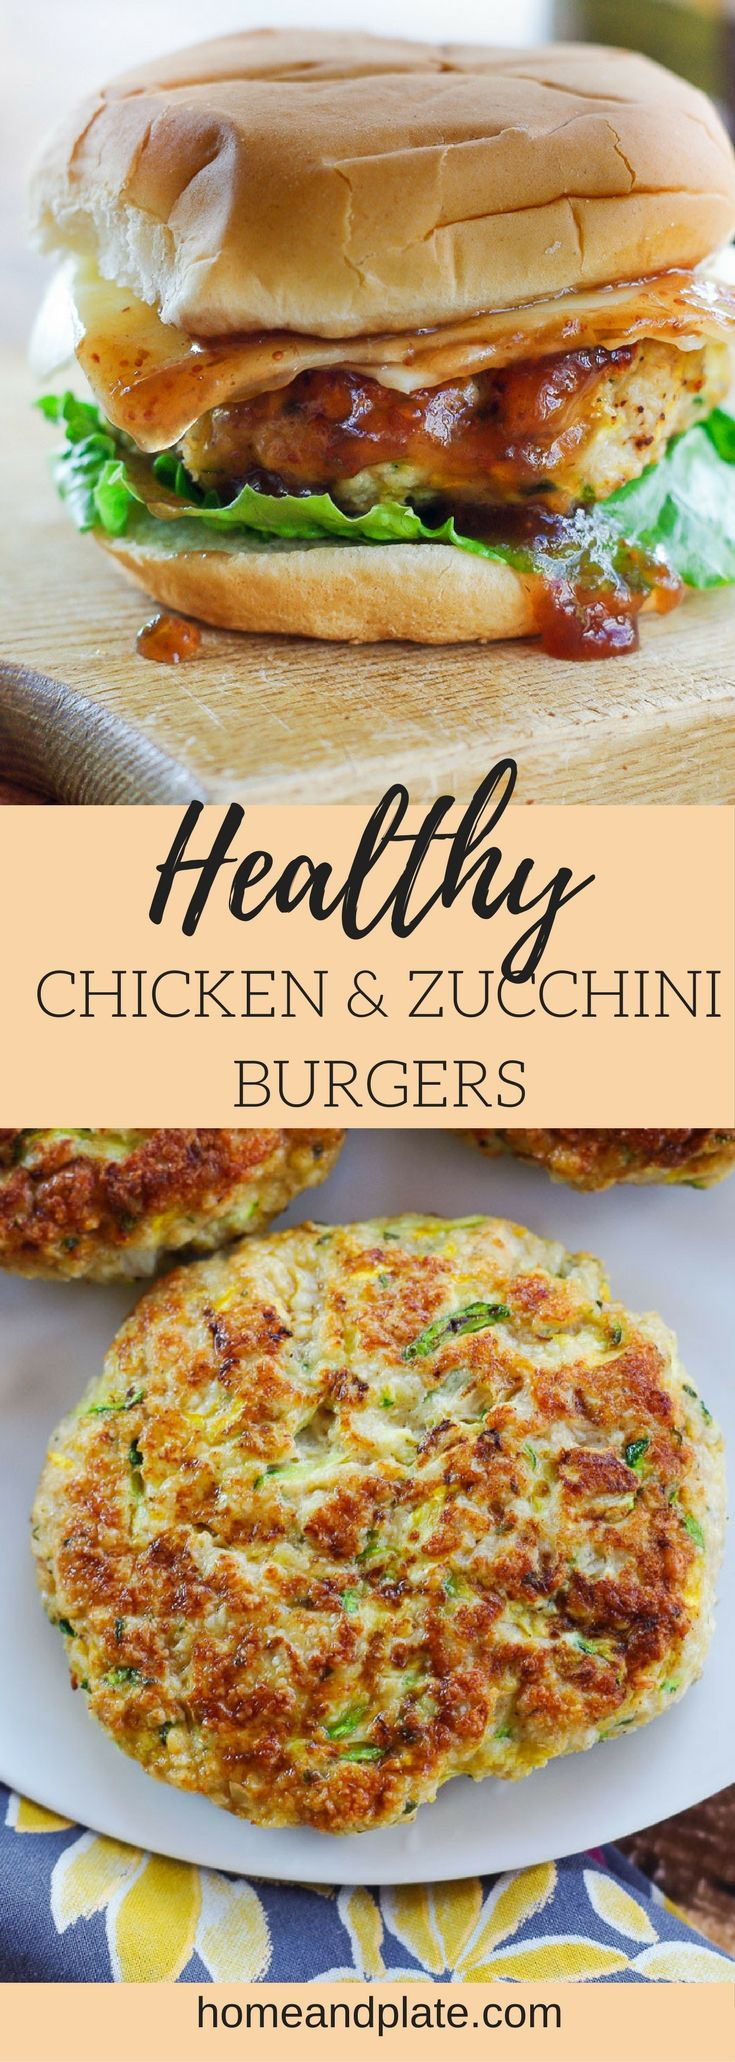 Healthy Chicken & Zucchini Burgers | Loaded with shredded zucchini and squash, these healthy chicken burgers are full of flavor and juicy. | www.homeandplate.com